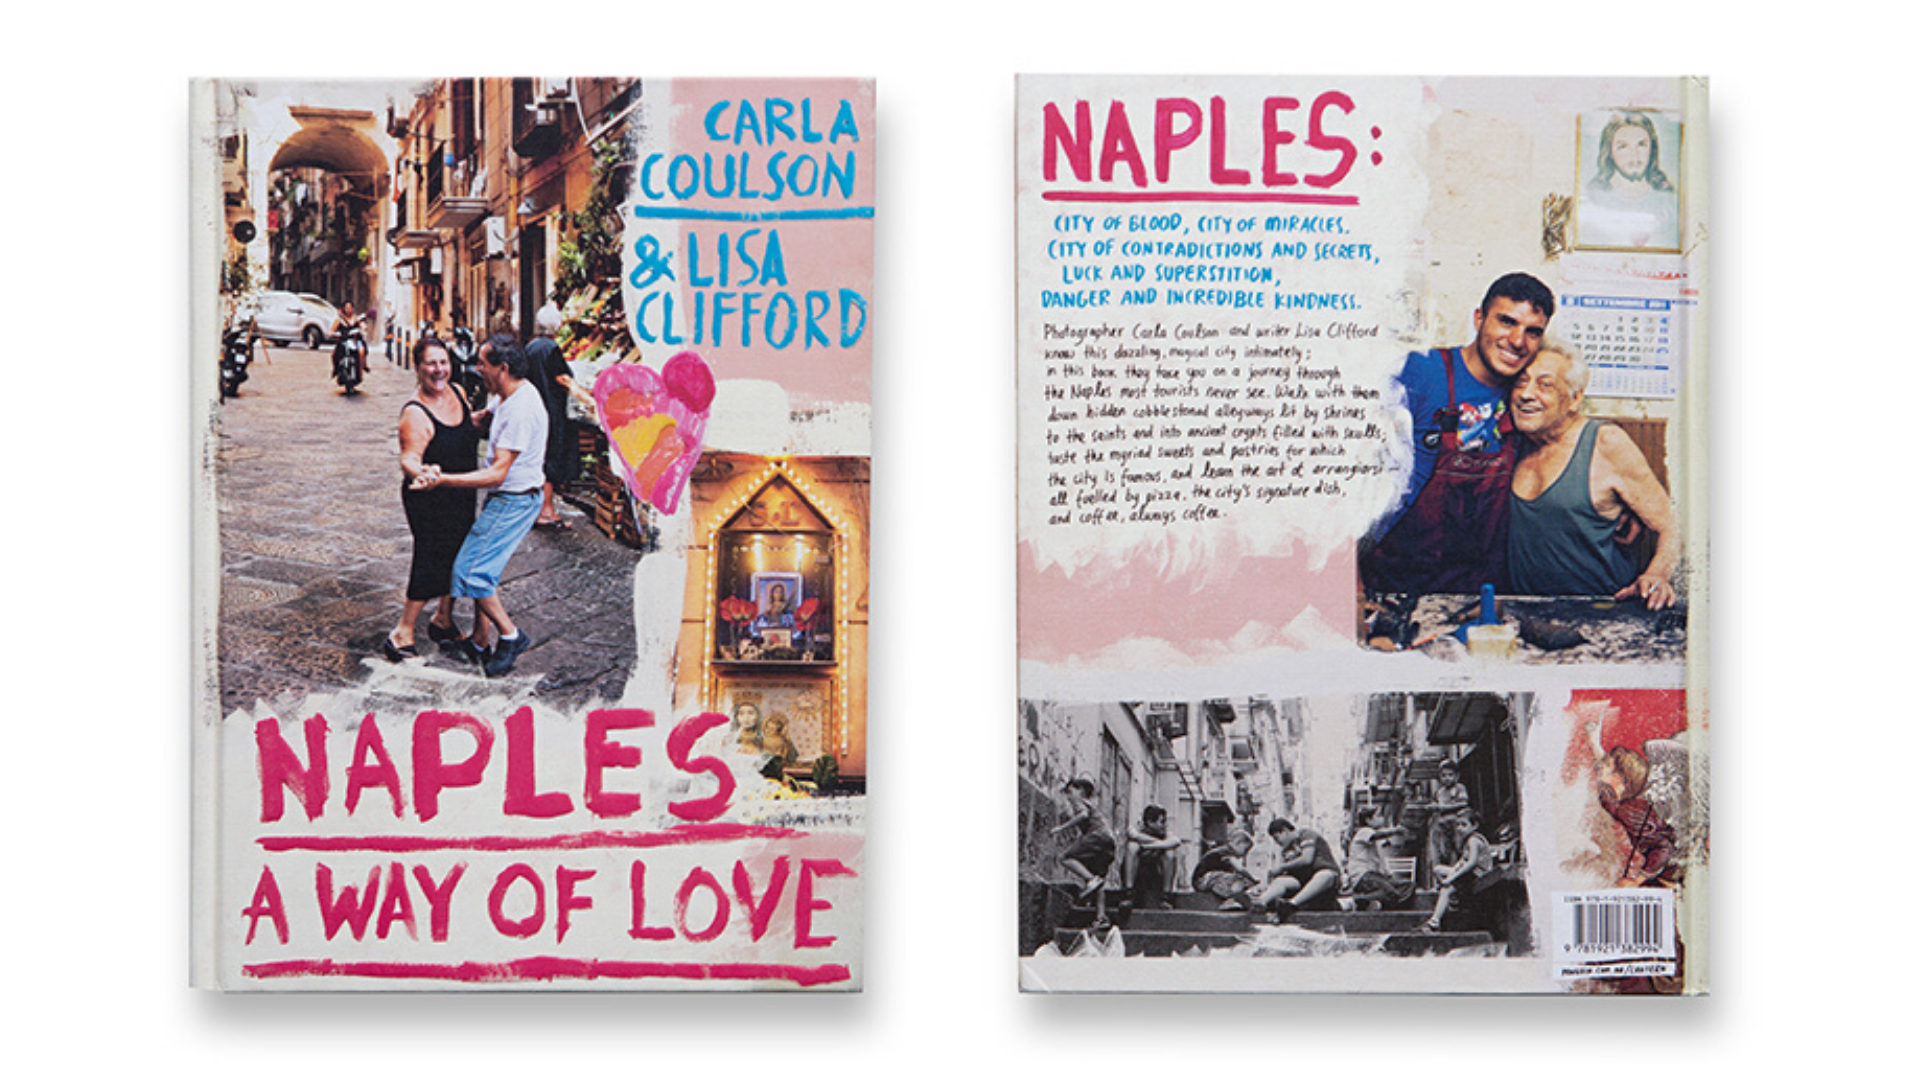 Naples: A Way of Love - Carla Coulson & Lisa Clifford